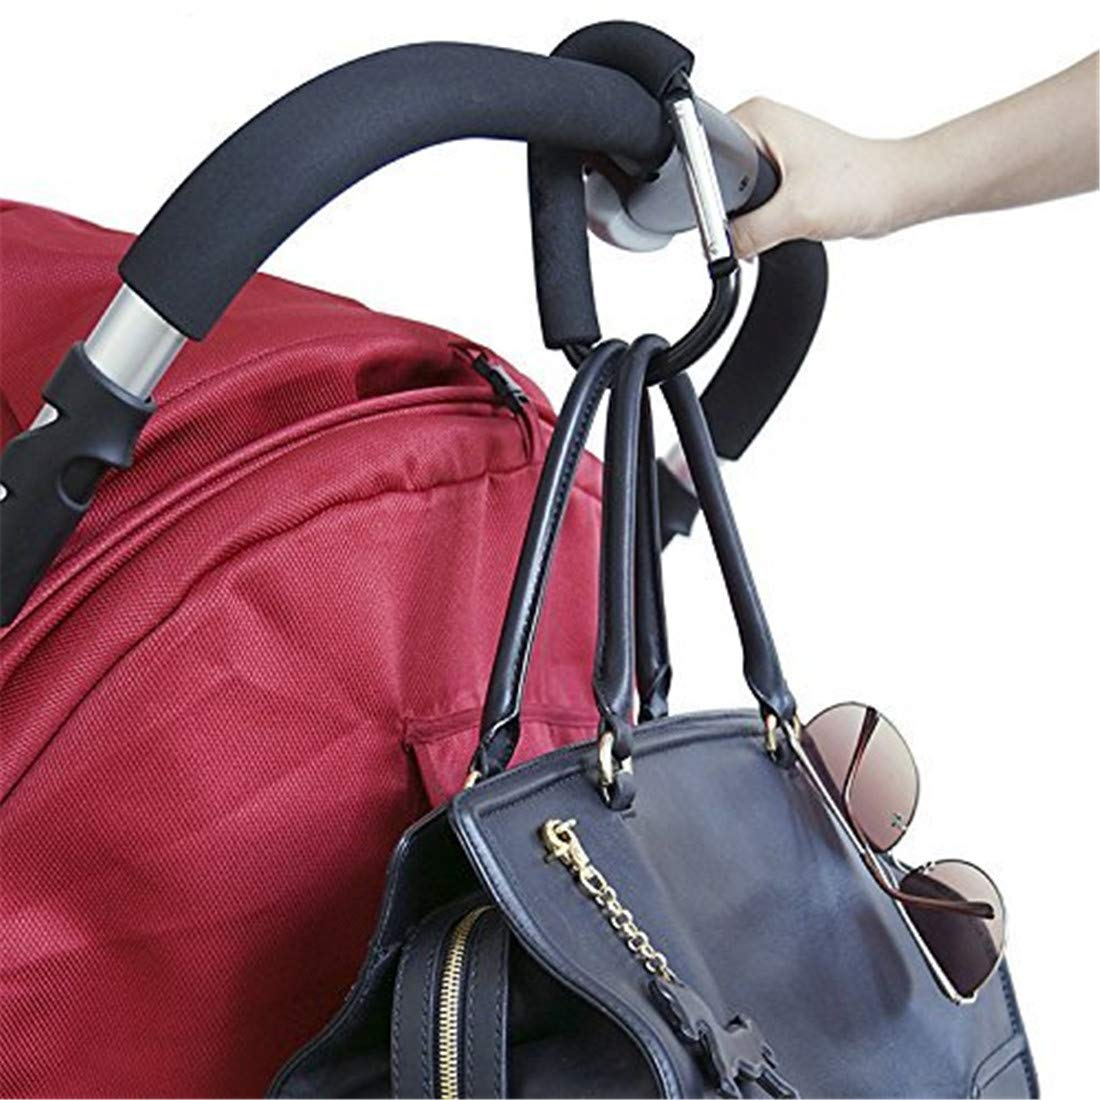 Tmrow Stroller Hook - Multi Purpose Hooks - Hanger for Baby Diaper Bags, Groceries, Clothing, Purse (1pc)